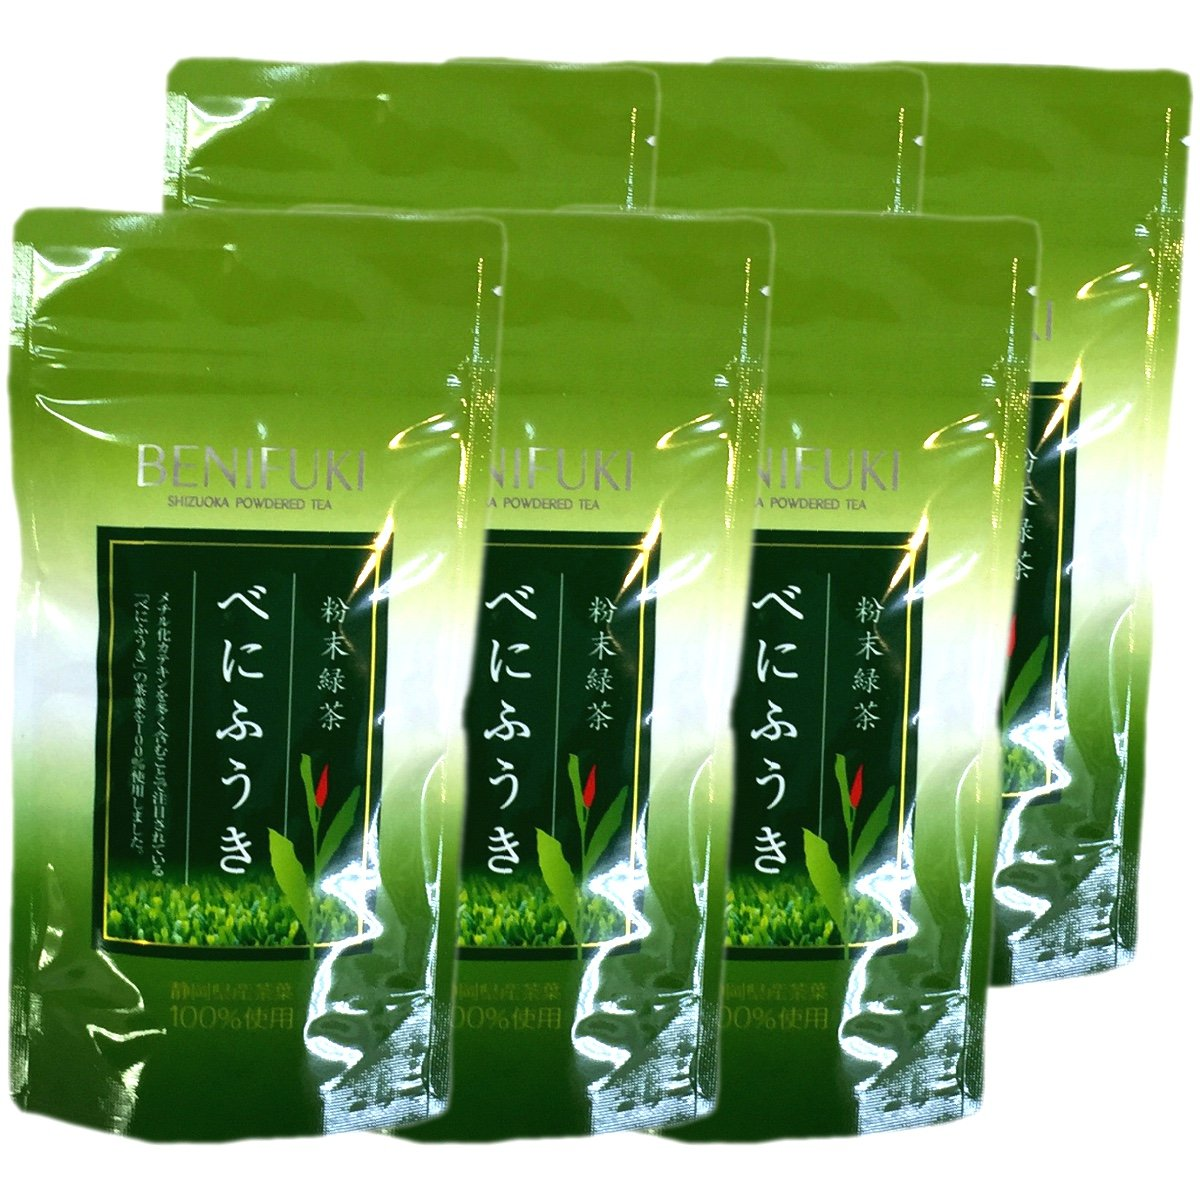 Japanese Tea Shop Yamaneen Benifuuki Powder 40G x 6packs